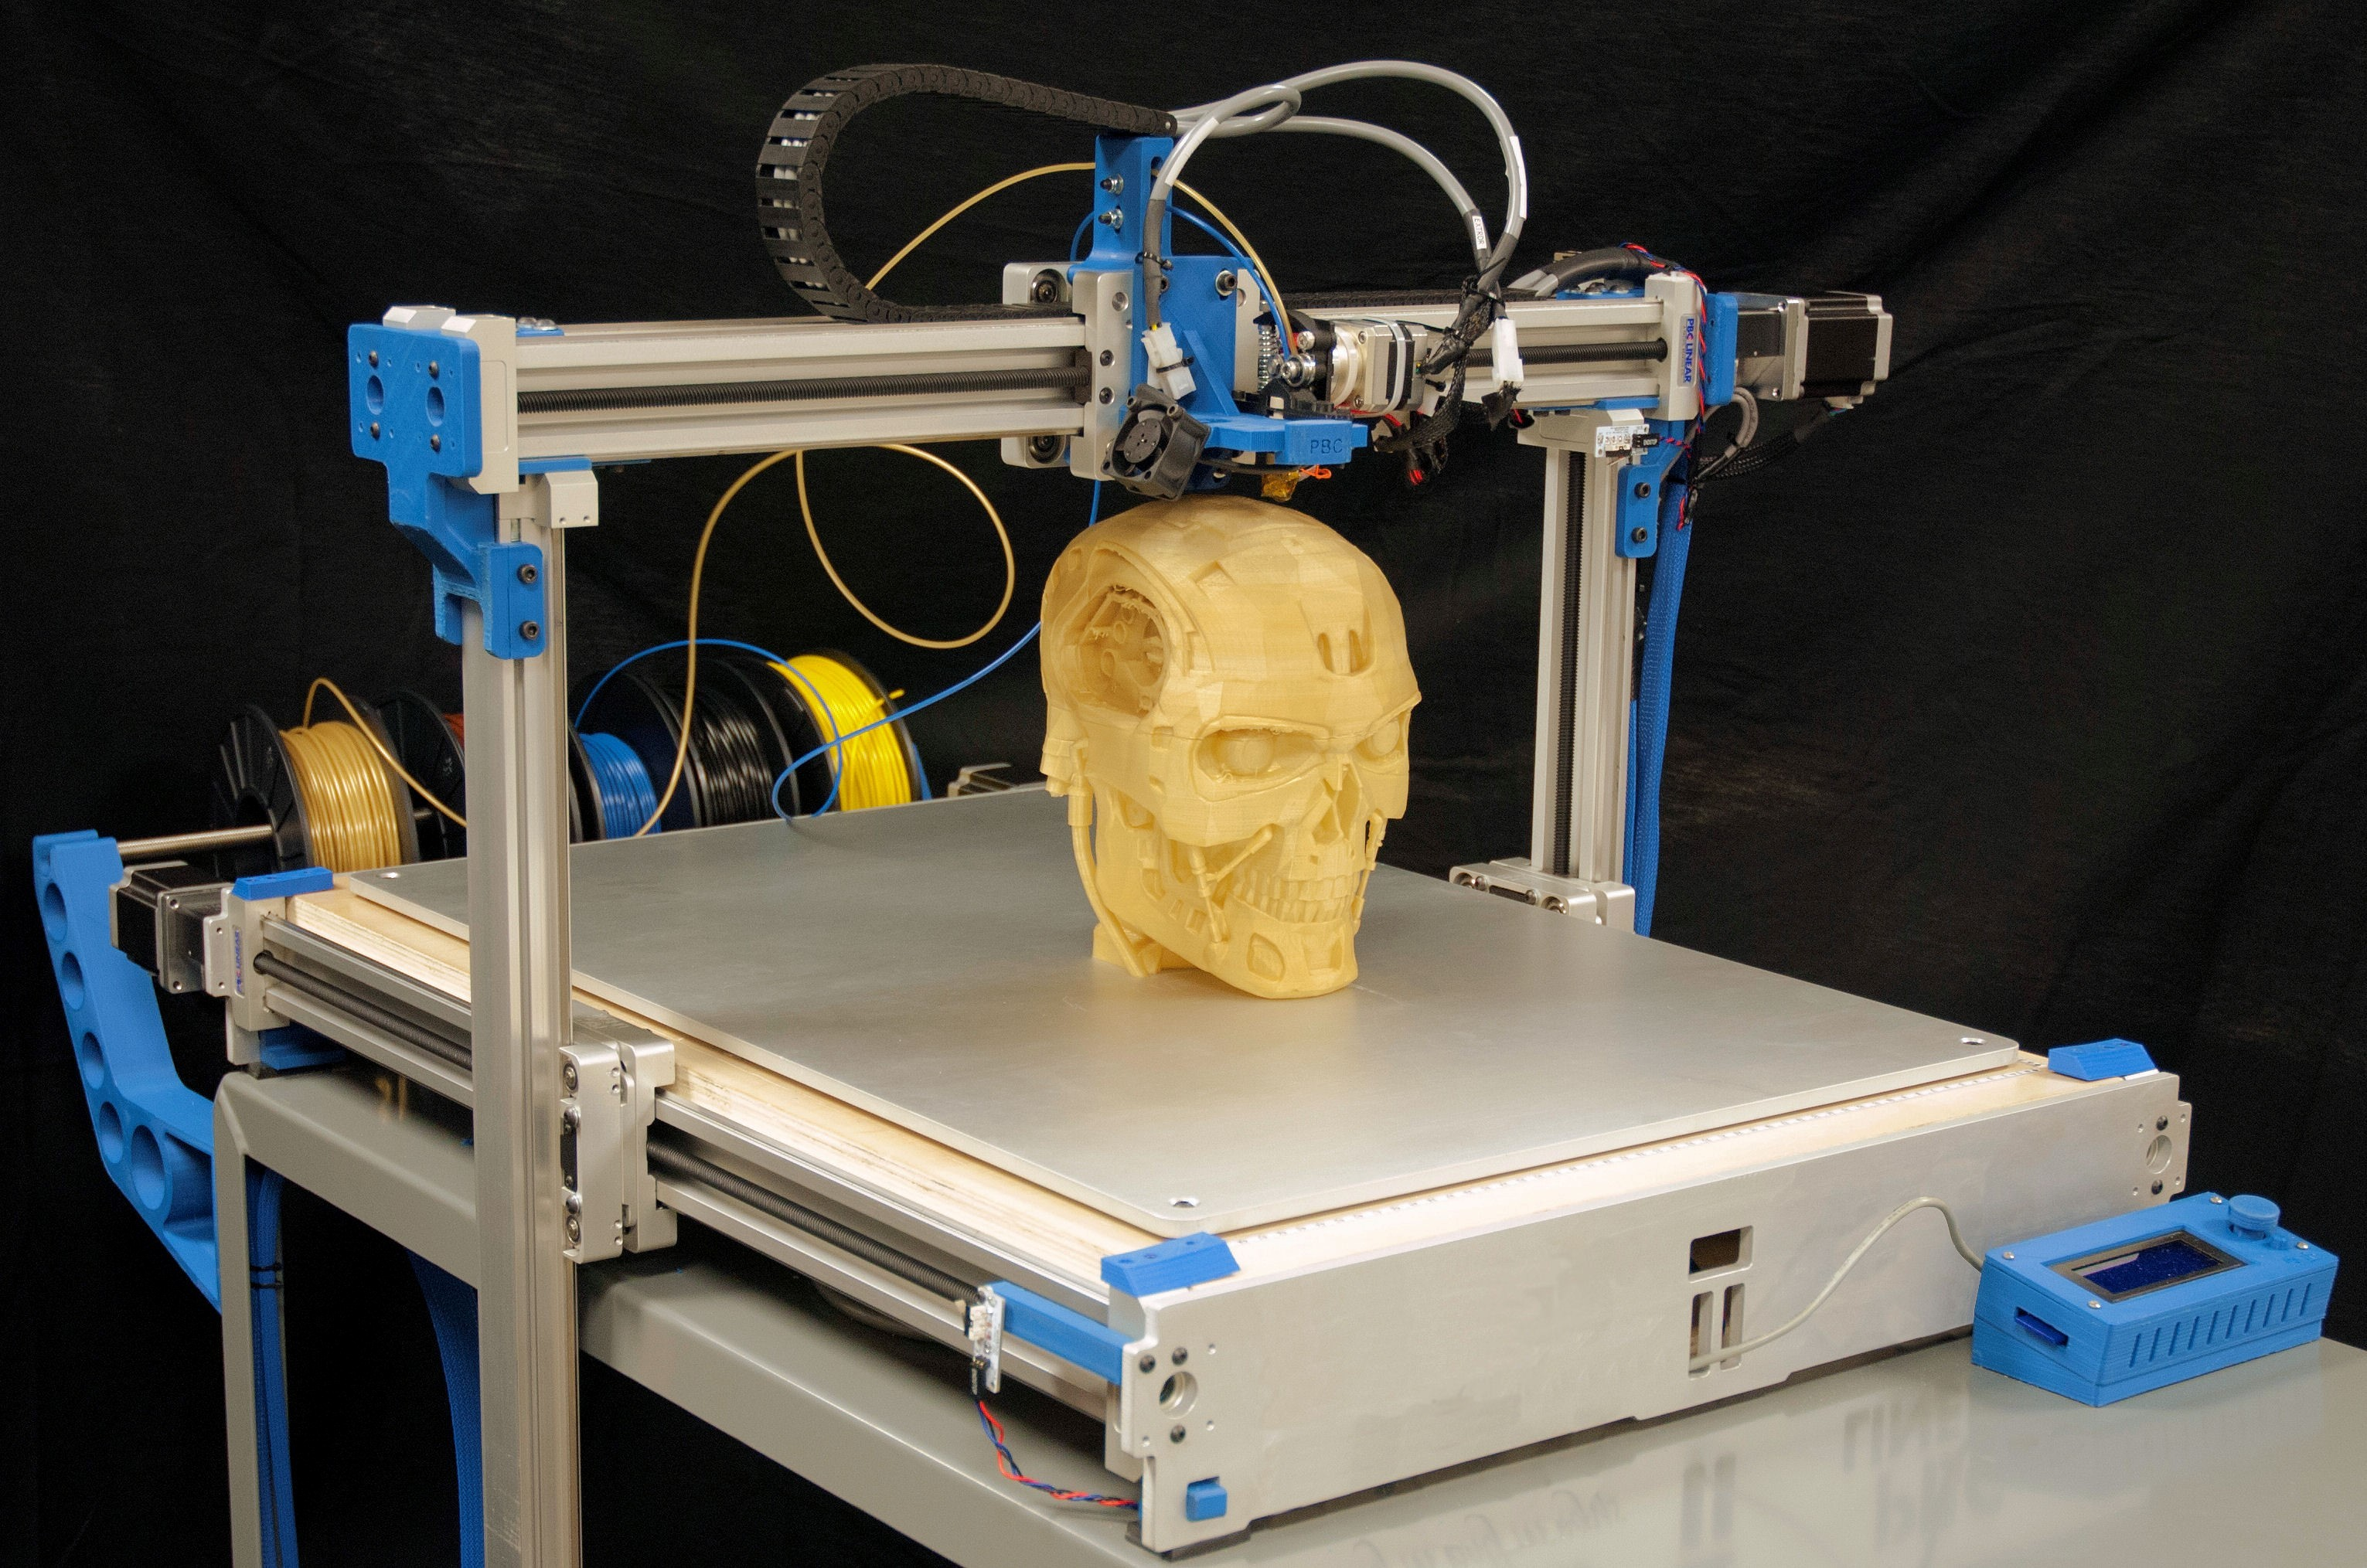 The Future is Printed in 3D